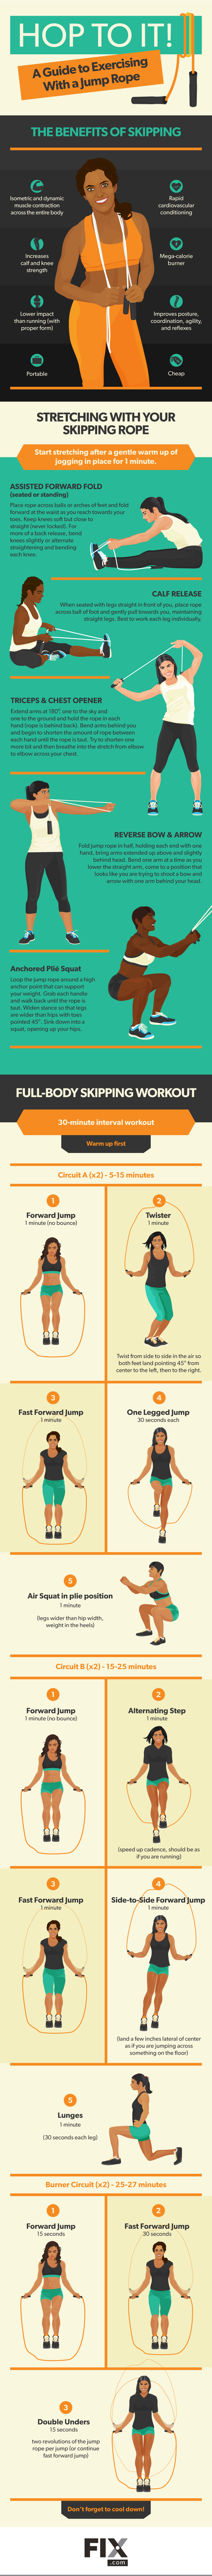 Hop, Skip, Jump Your Way to Fitness: Jump-Rope Exercises - Infographic